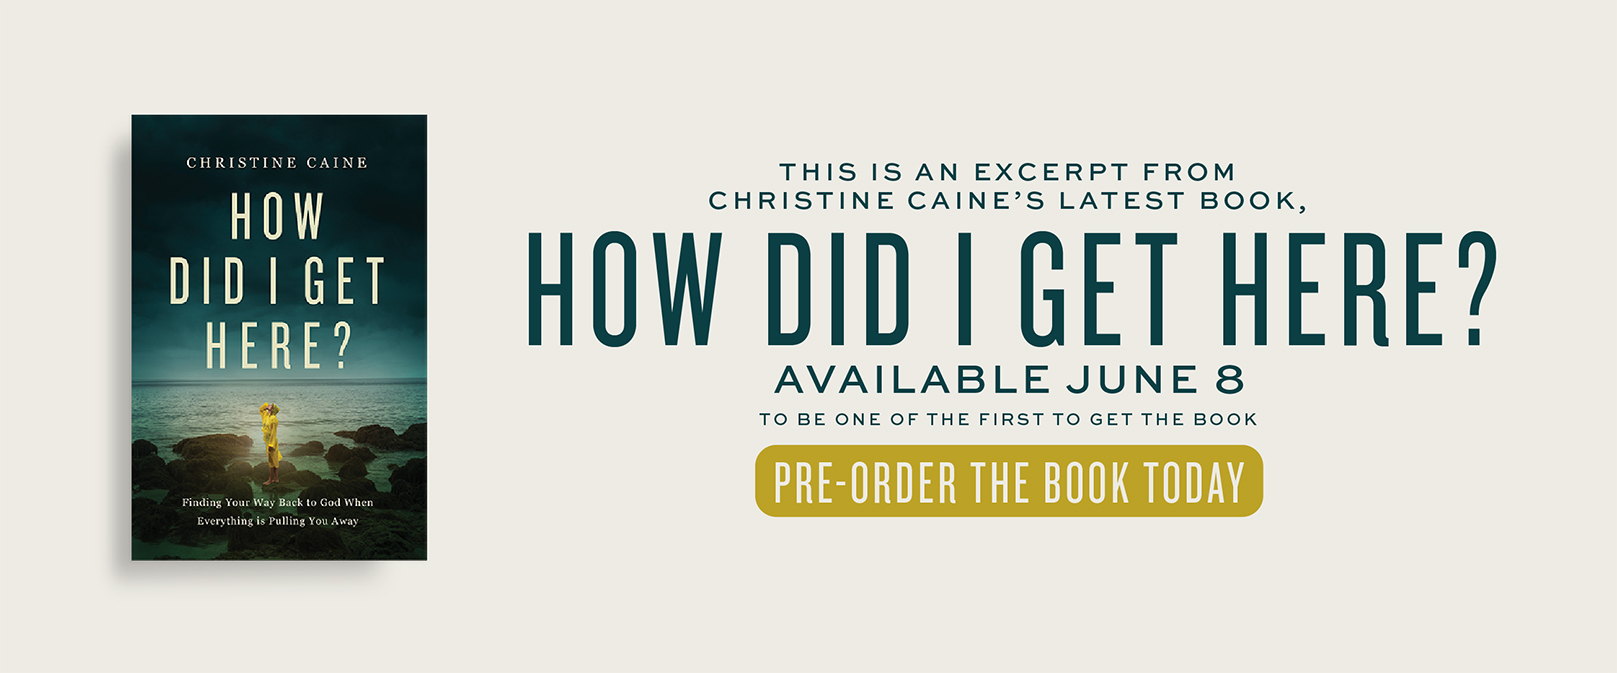 Christine Caine's Latest Book How Did I Get Here?